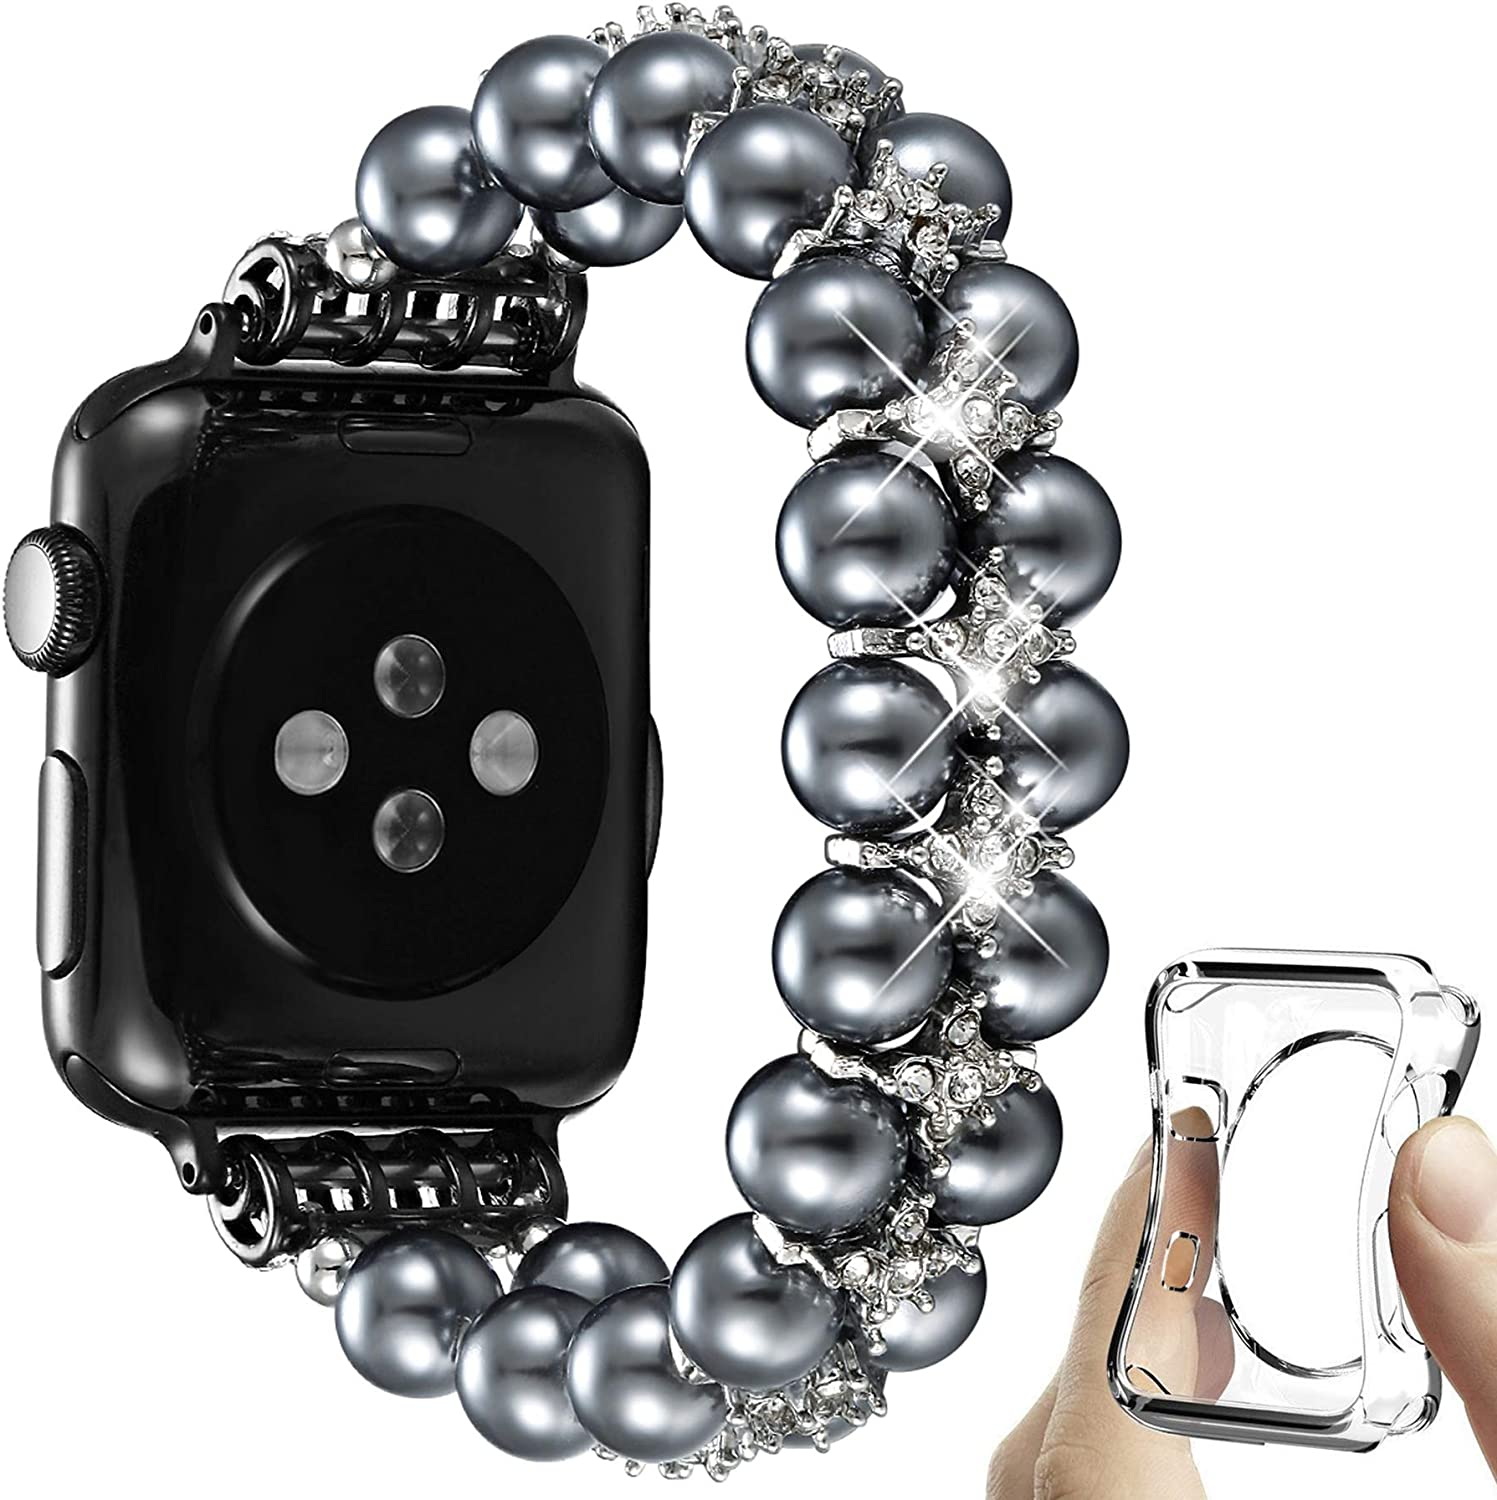 fastgo Compatible with Pearl Apple Watch Band 38mm 40mm Series 6/5/4/3/2/1, Women Girls Stretchy Beaded Bracelet Dressy Handpicked Elastic Jewelry Fancy Wristband for Iwatch SE Ladies Gift 42mm 44mm